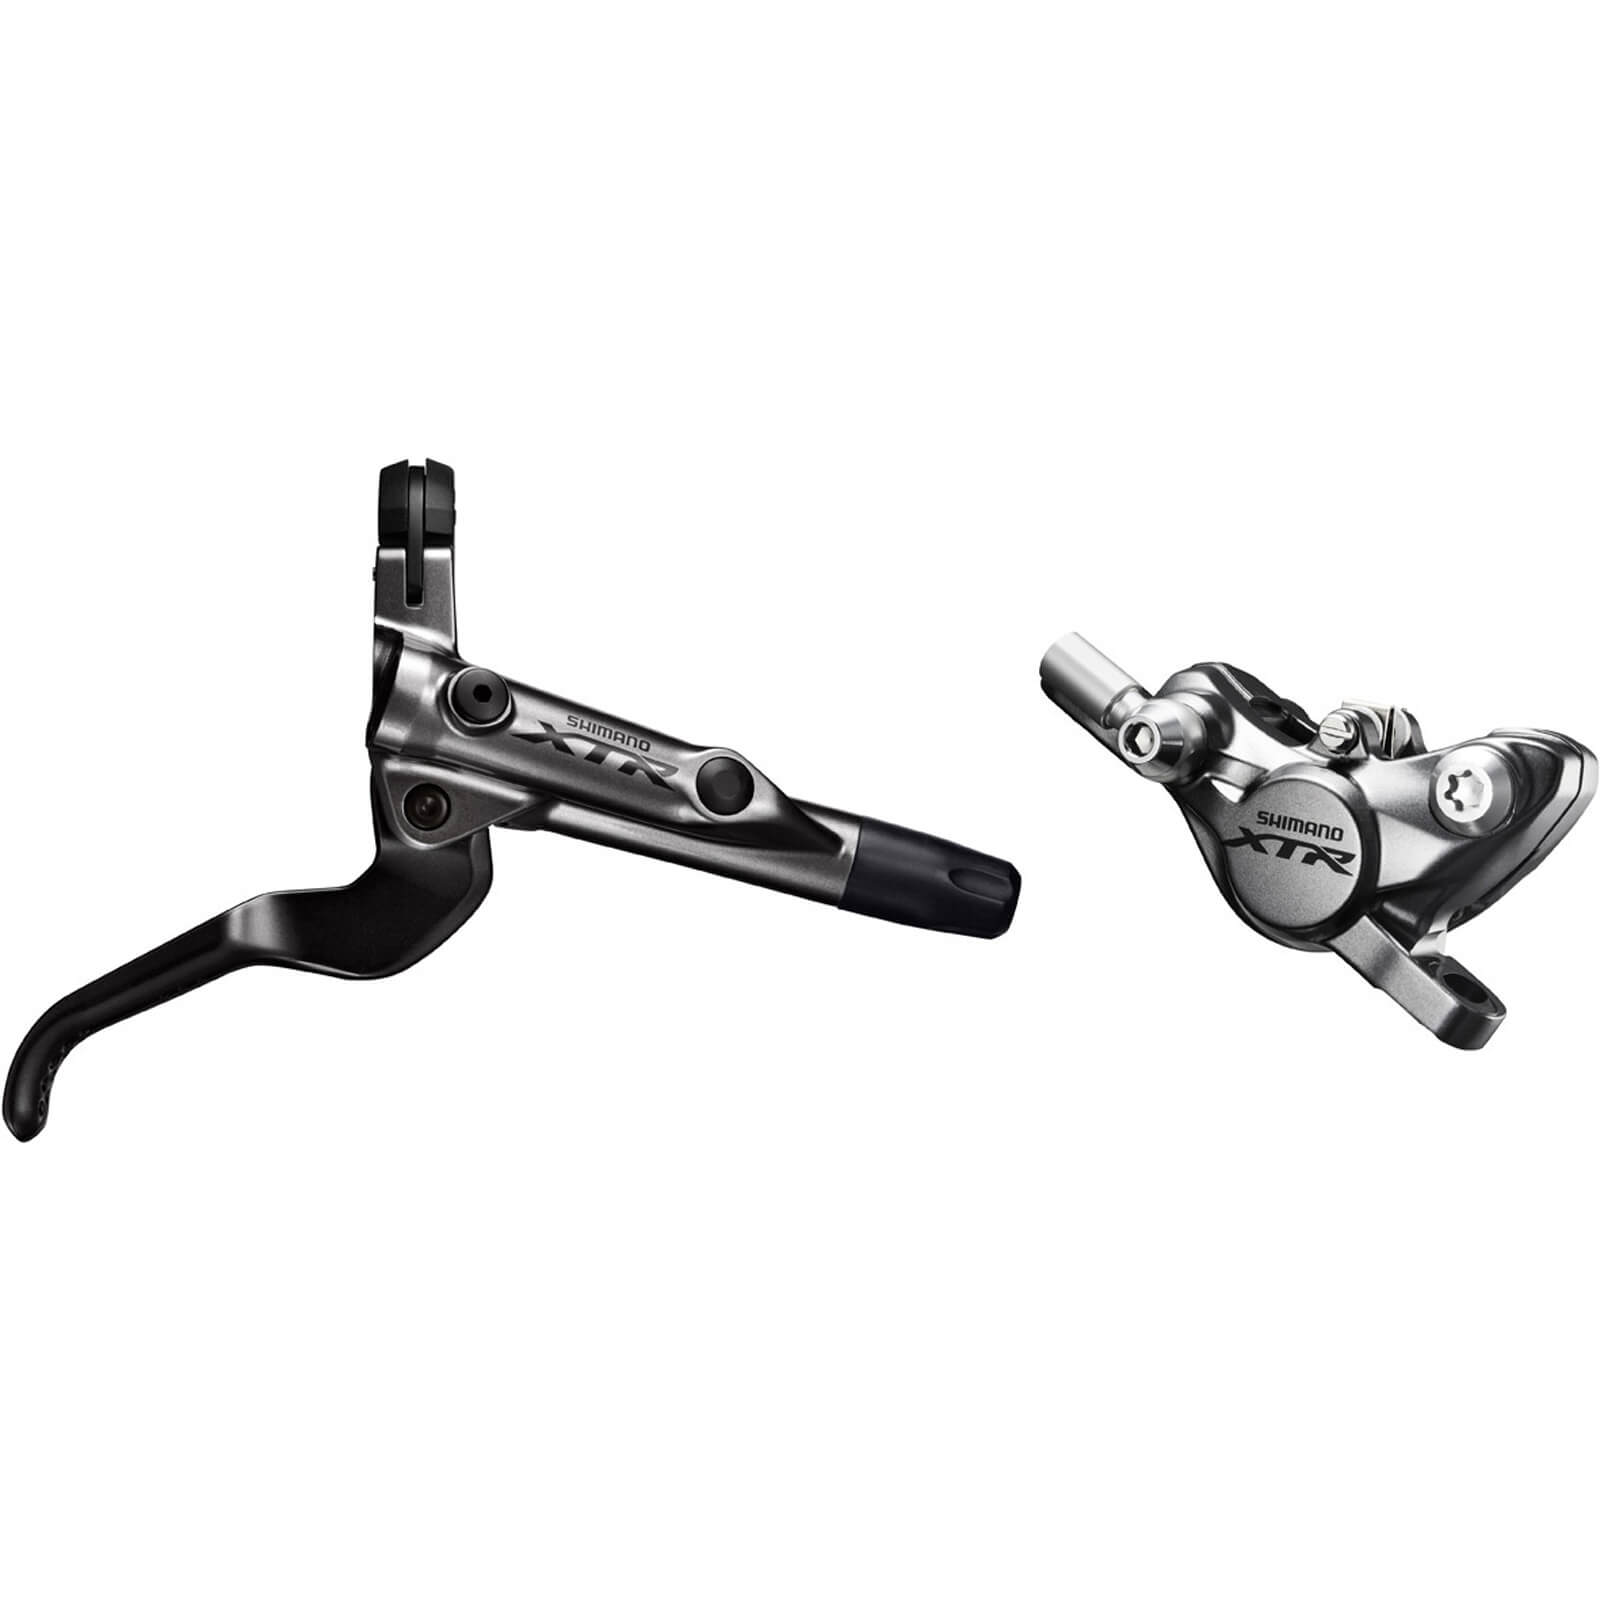 Shimano BR-M9000 XTR Bled I-Spec-II Ready Brake Lever/Post Mount Caliper